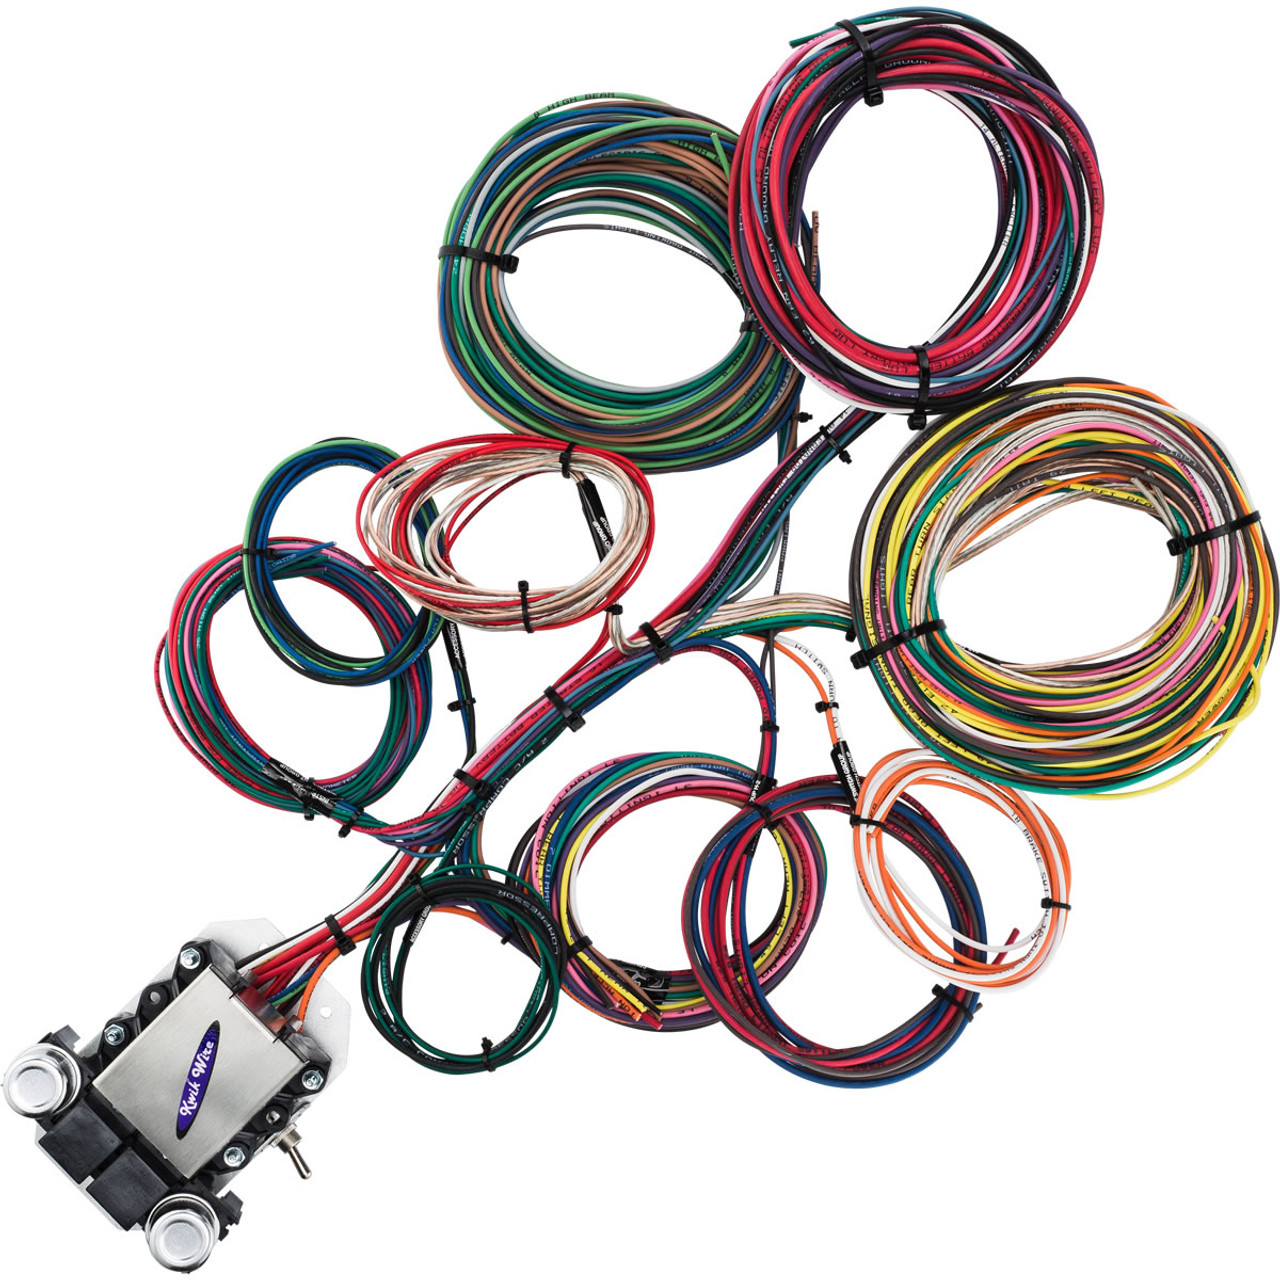 14 circuit ford wire harness kwikwire com electrify your ride ford wiring harness kits e40d ford wiring harness [ 1200 x 1200 Pixel ]